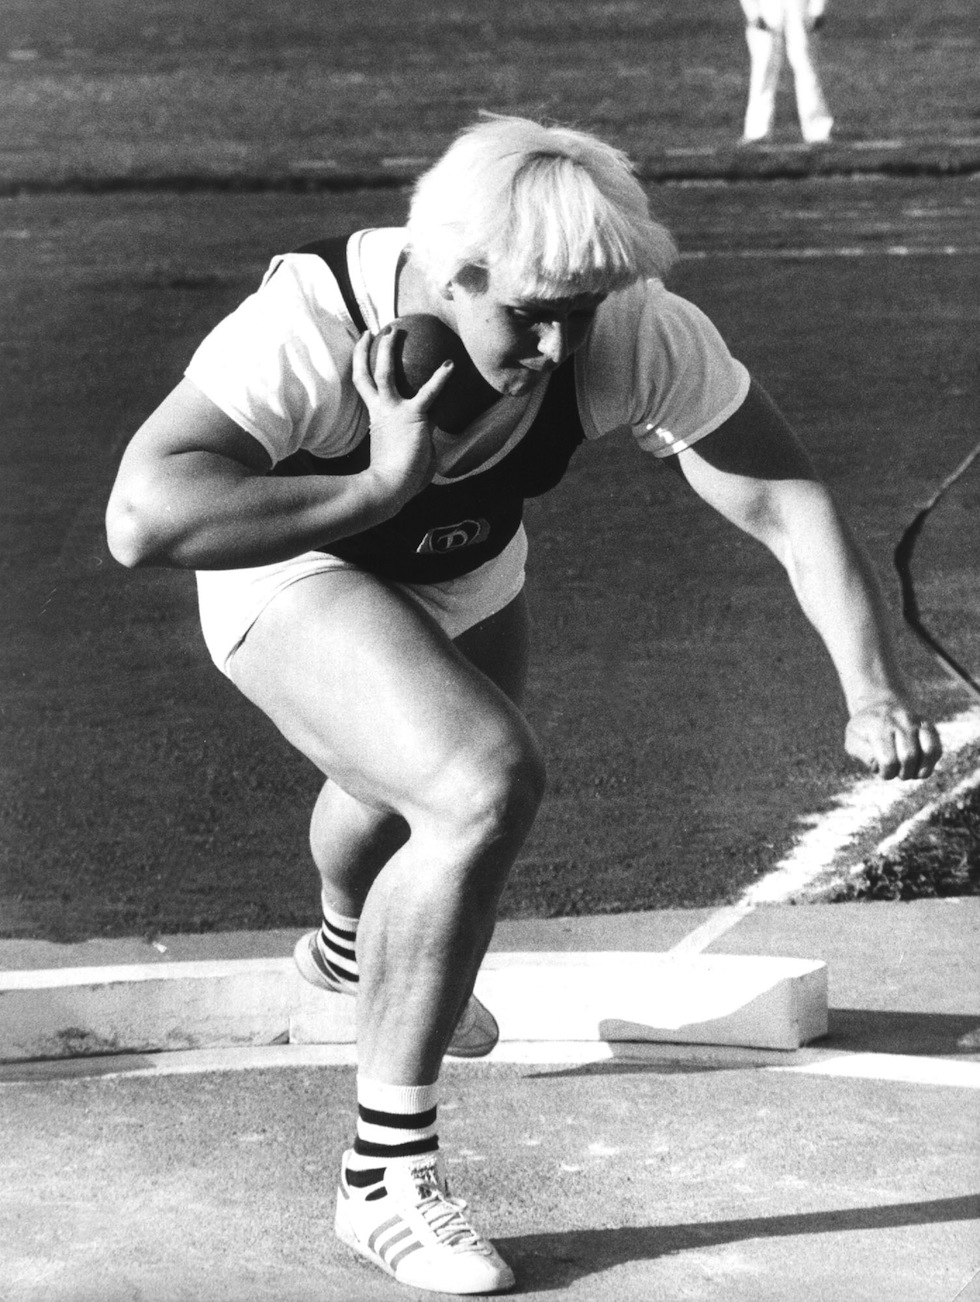 Slupianek was disqualified after she tested positive for anabolic steroids at the 1977 European Cup meeting in Helsinki, where she dominated her event with a superlative 21.20.